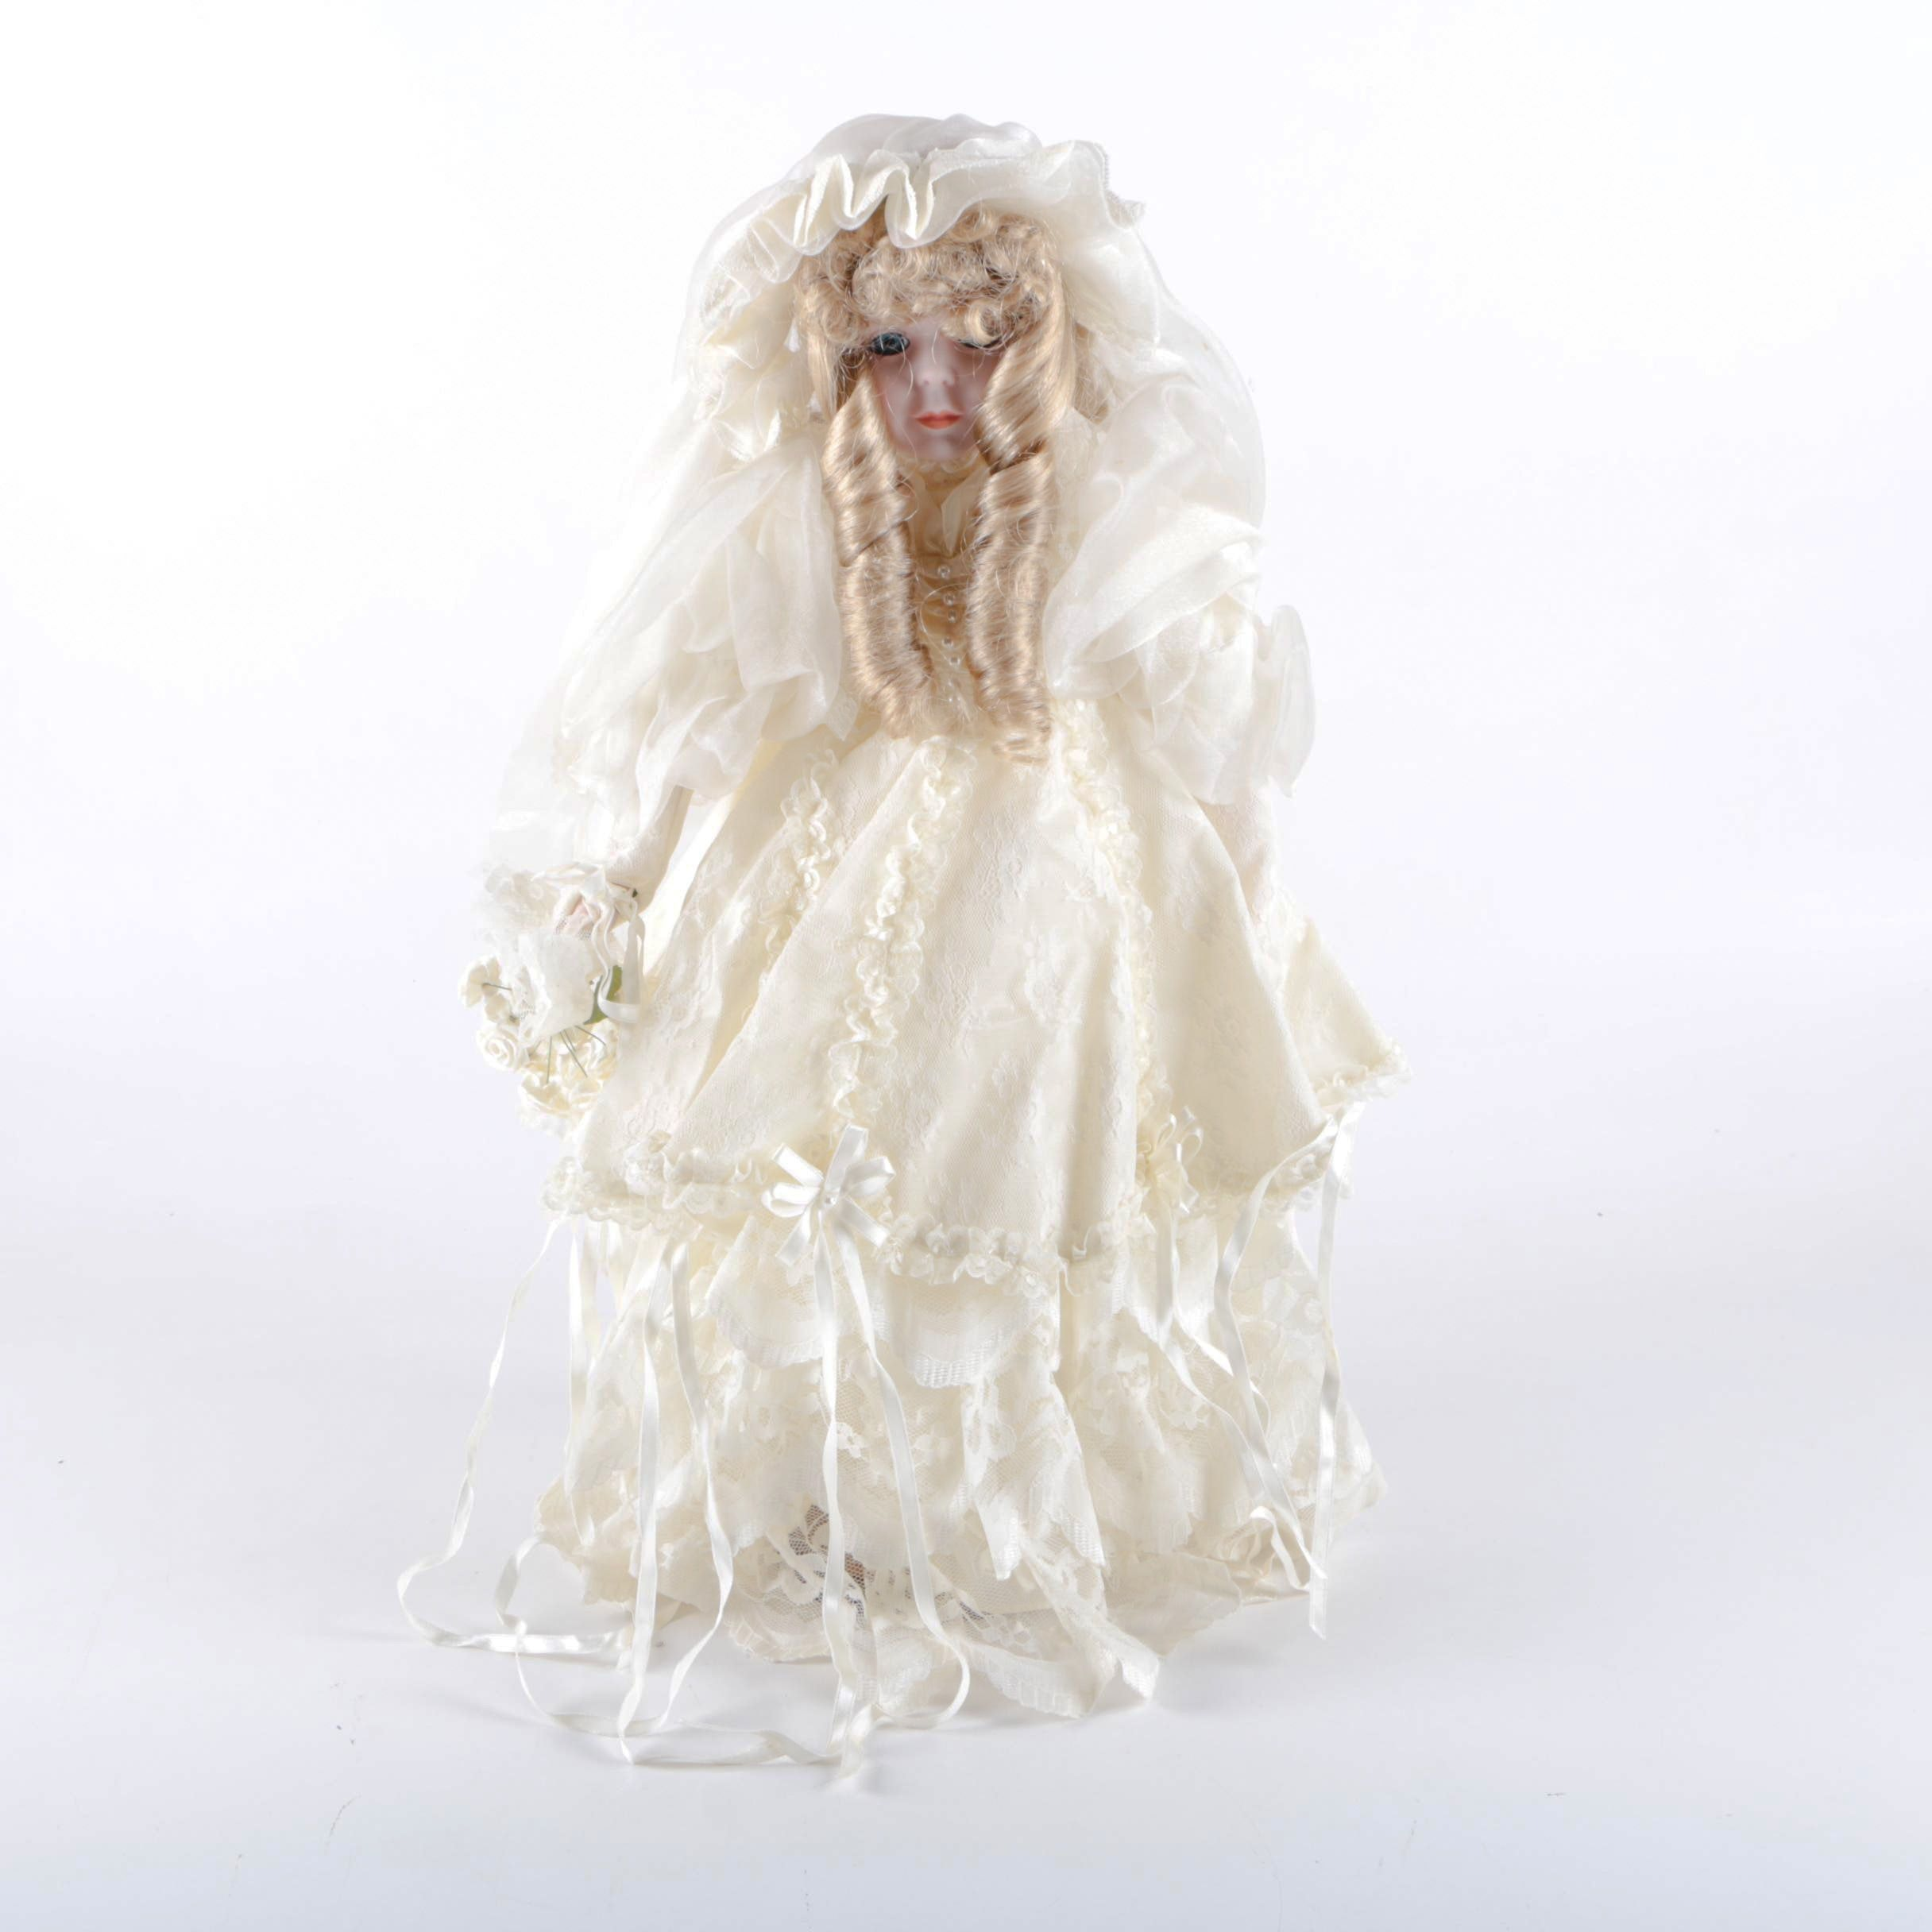 Vintage Porcelain Victorian Bride Doll with Stand